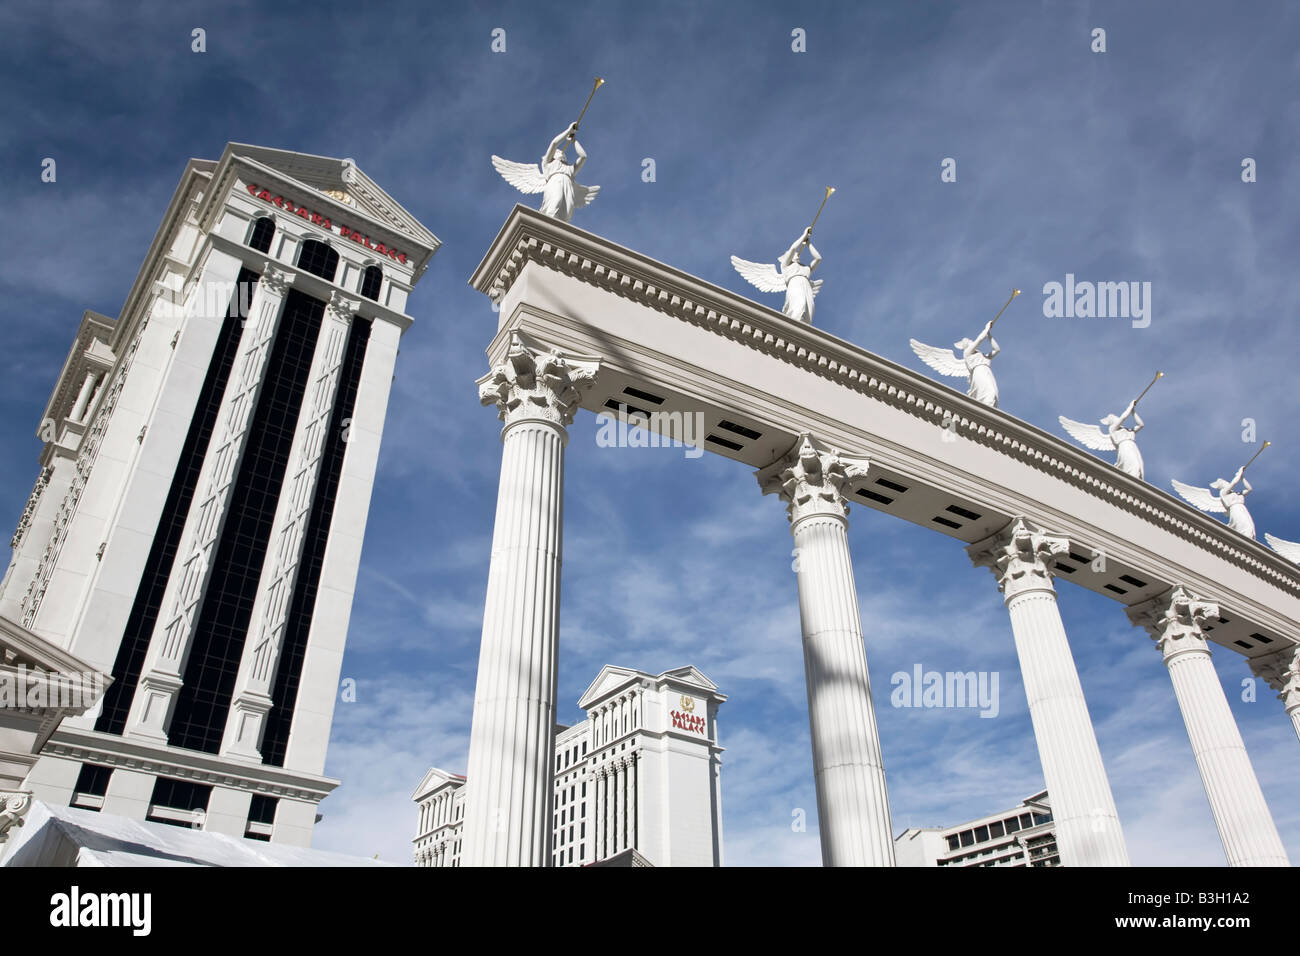 The entrance gate to Caesars Palace in Las Vegas Stock Photo